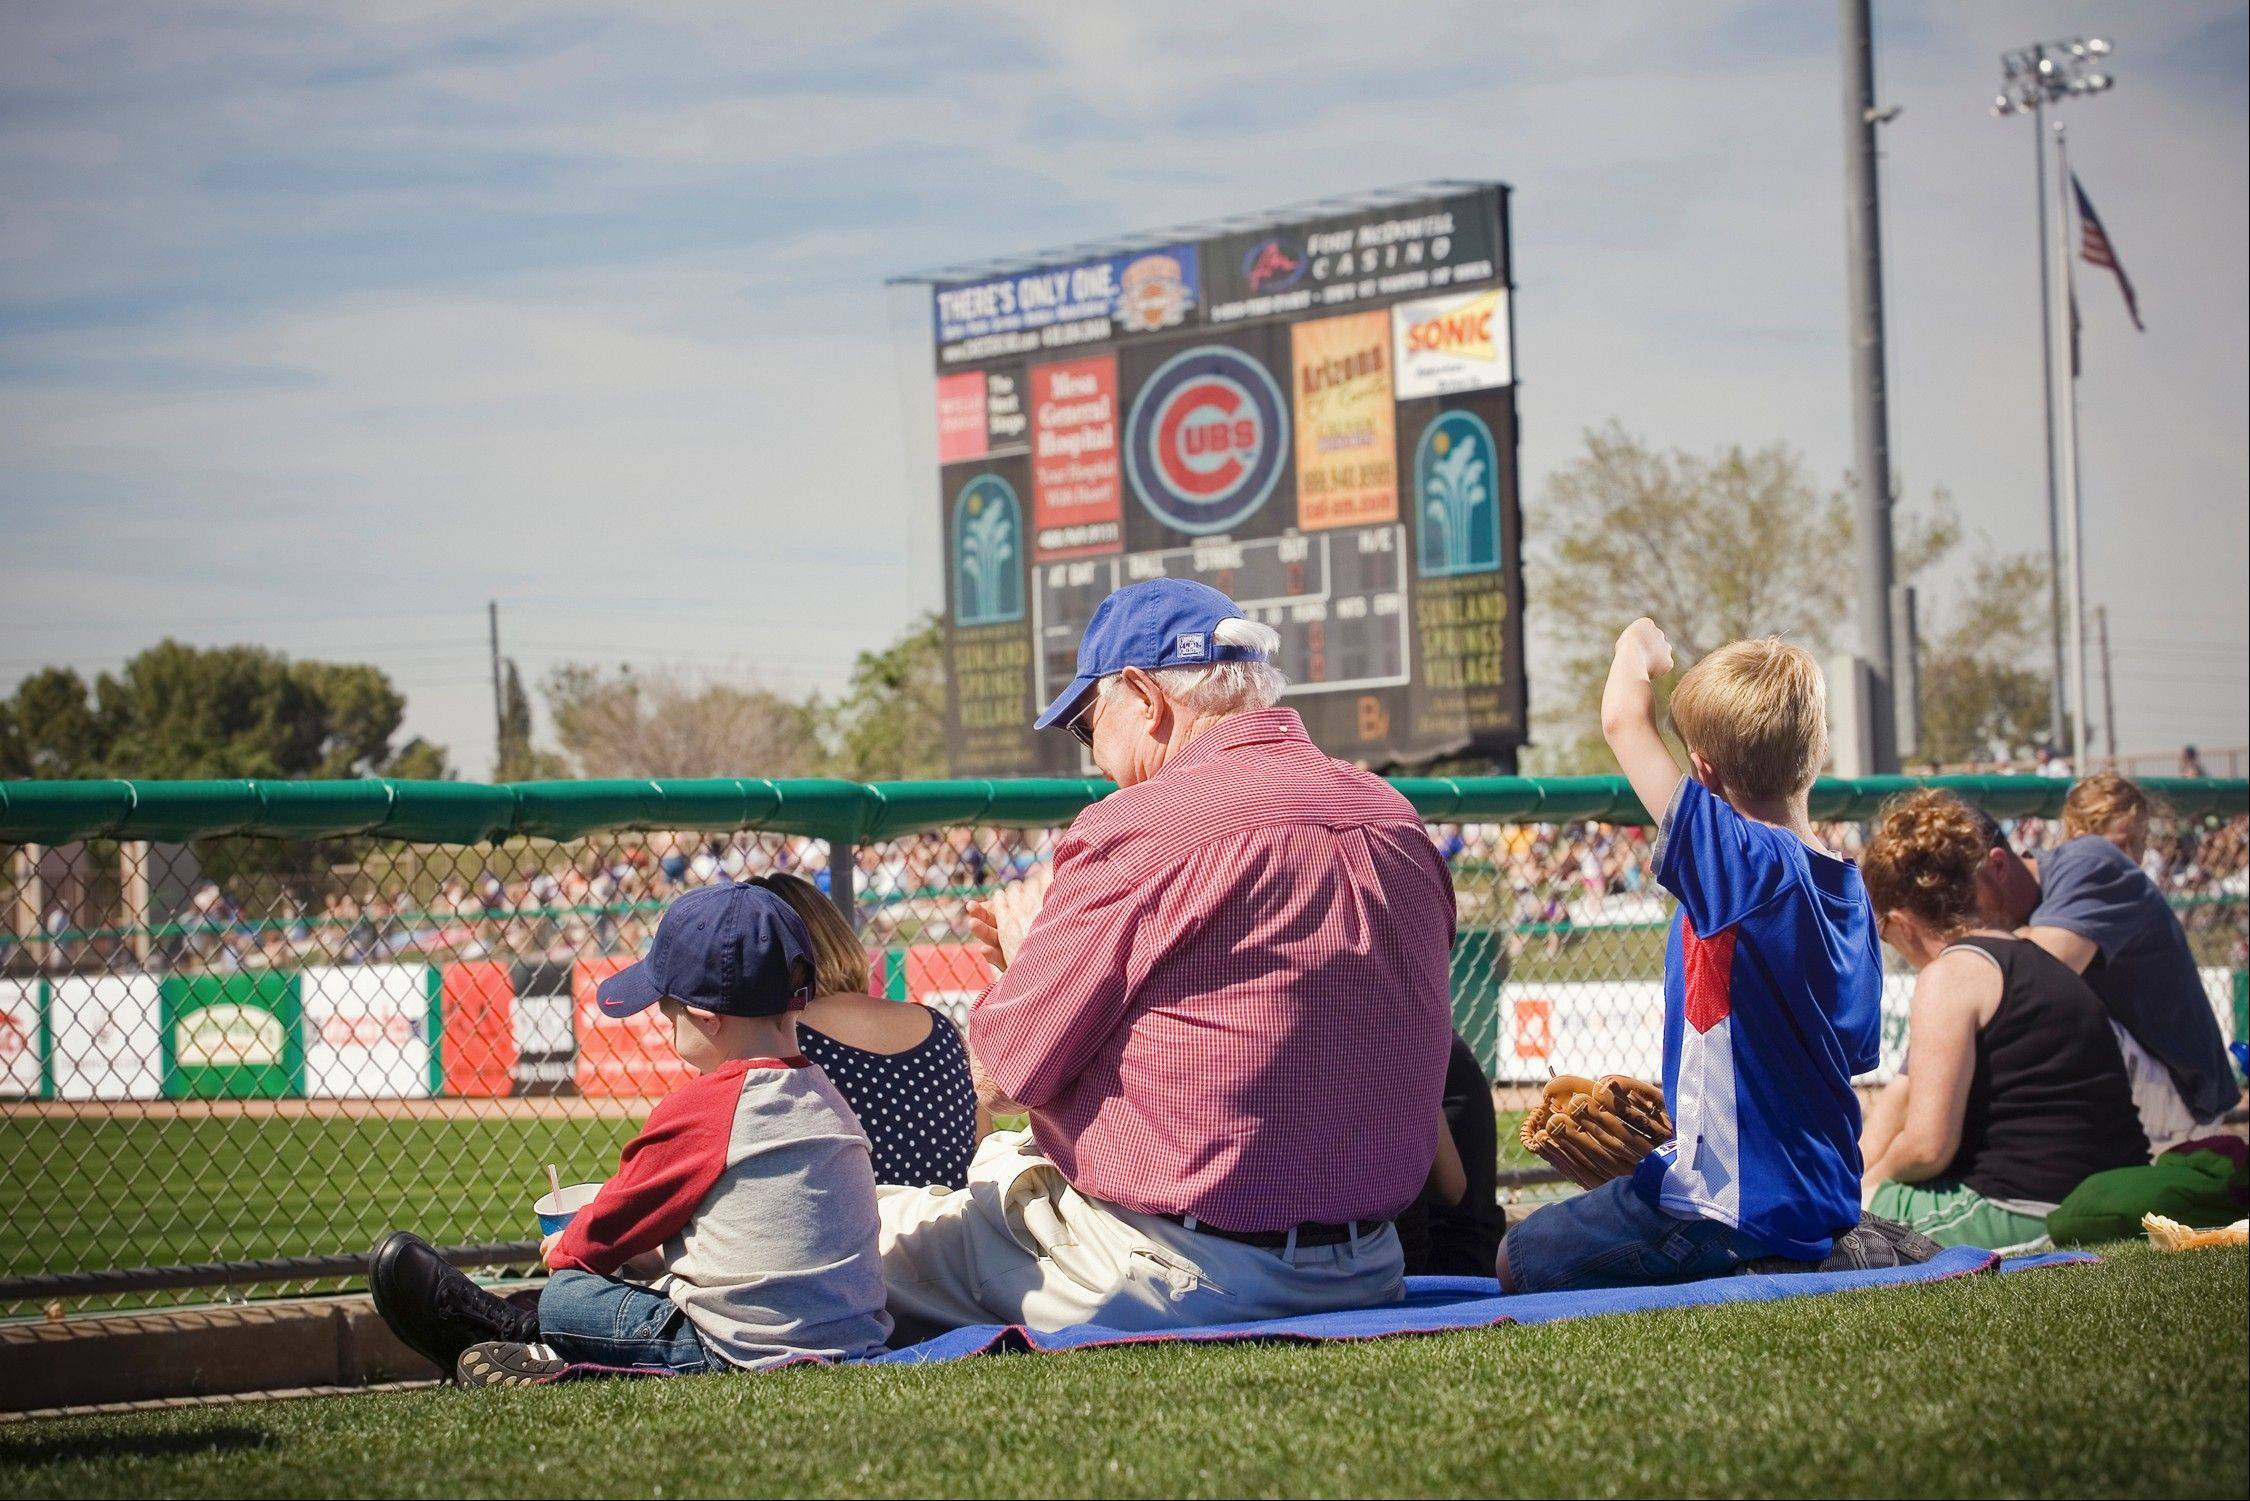 Spring training for the Chicago Cubs runs through March at HoHoKam Stadium in Mesa. A new stadium under construction will open in 2014.